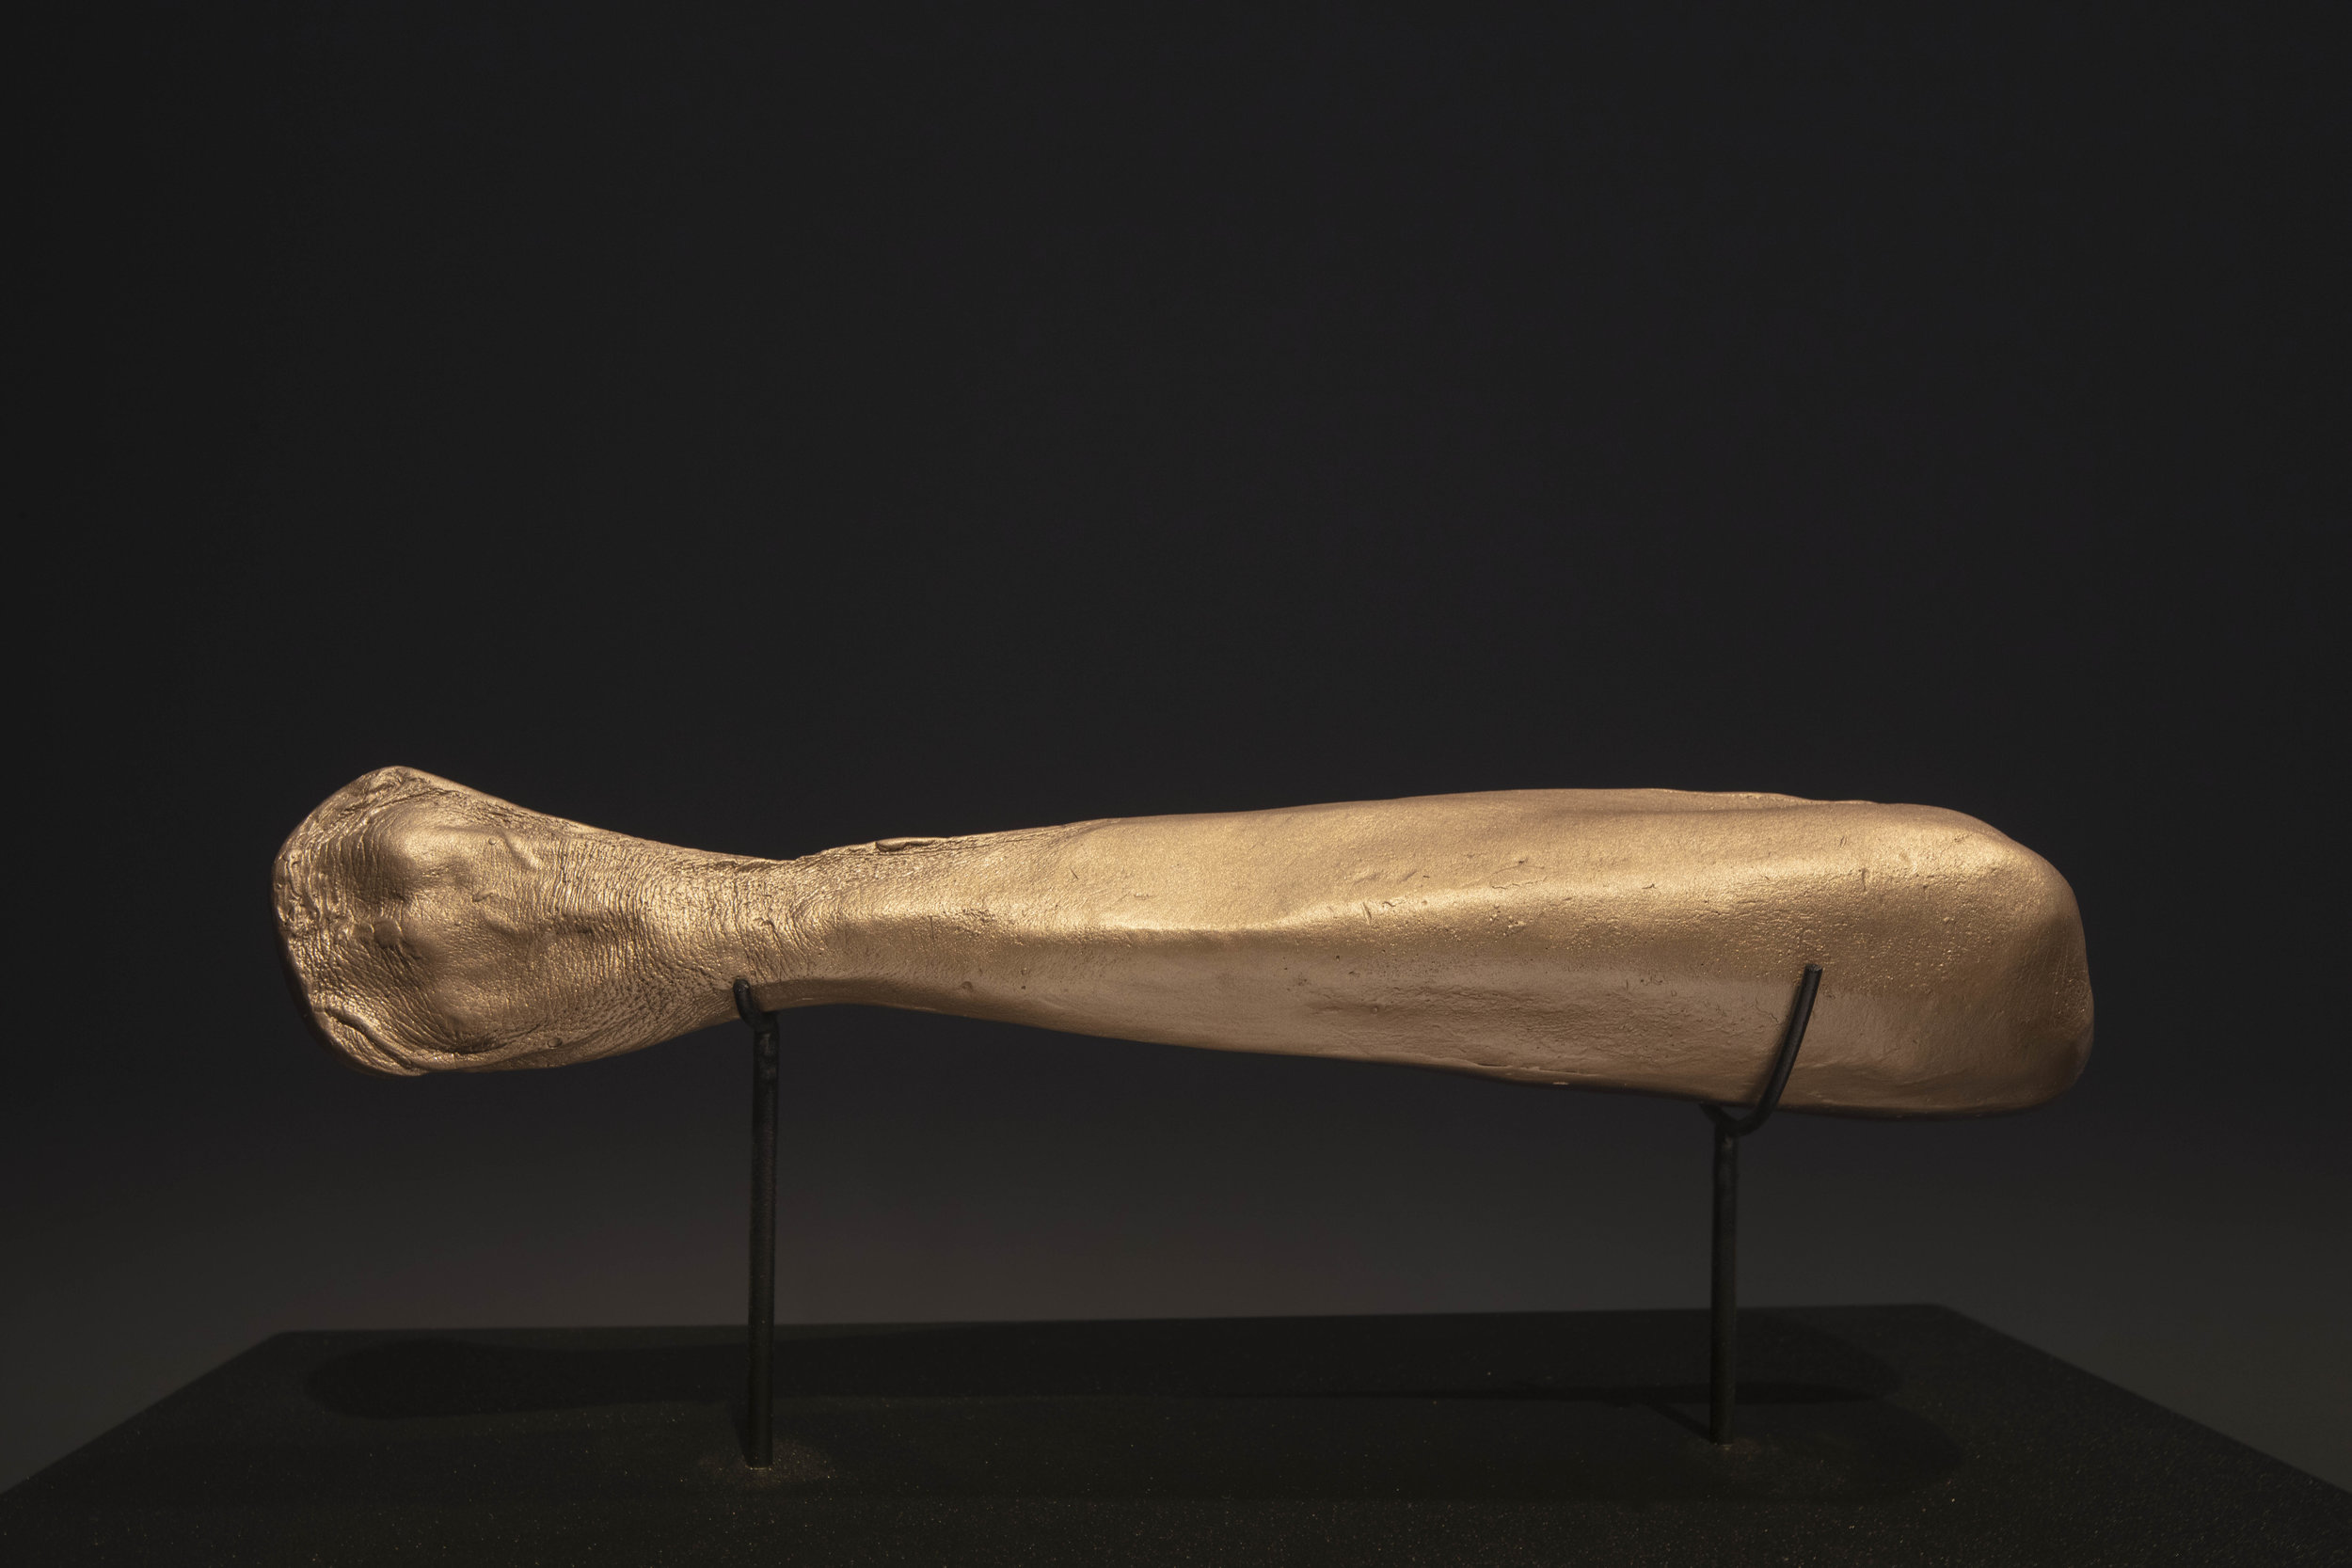 """JULIE RRAP  """"Elbowed"""" Club  [detail], 2019 Bronze and steel, edition of 3 106 x 47 x 28 cm   Photograph by John Gollings"""